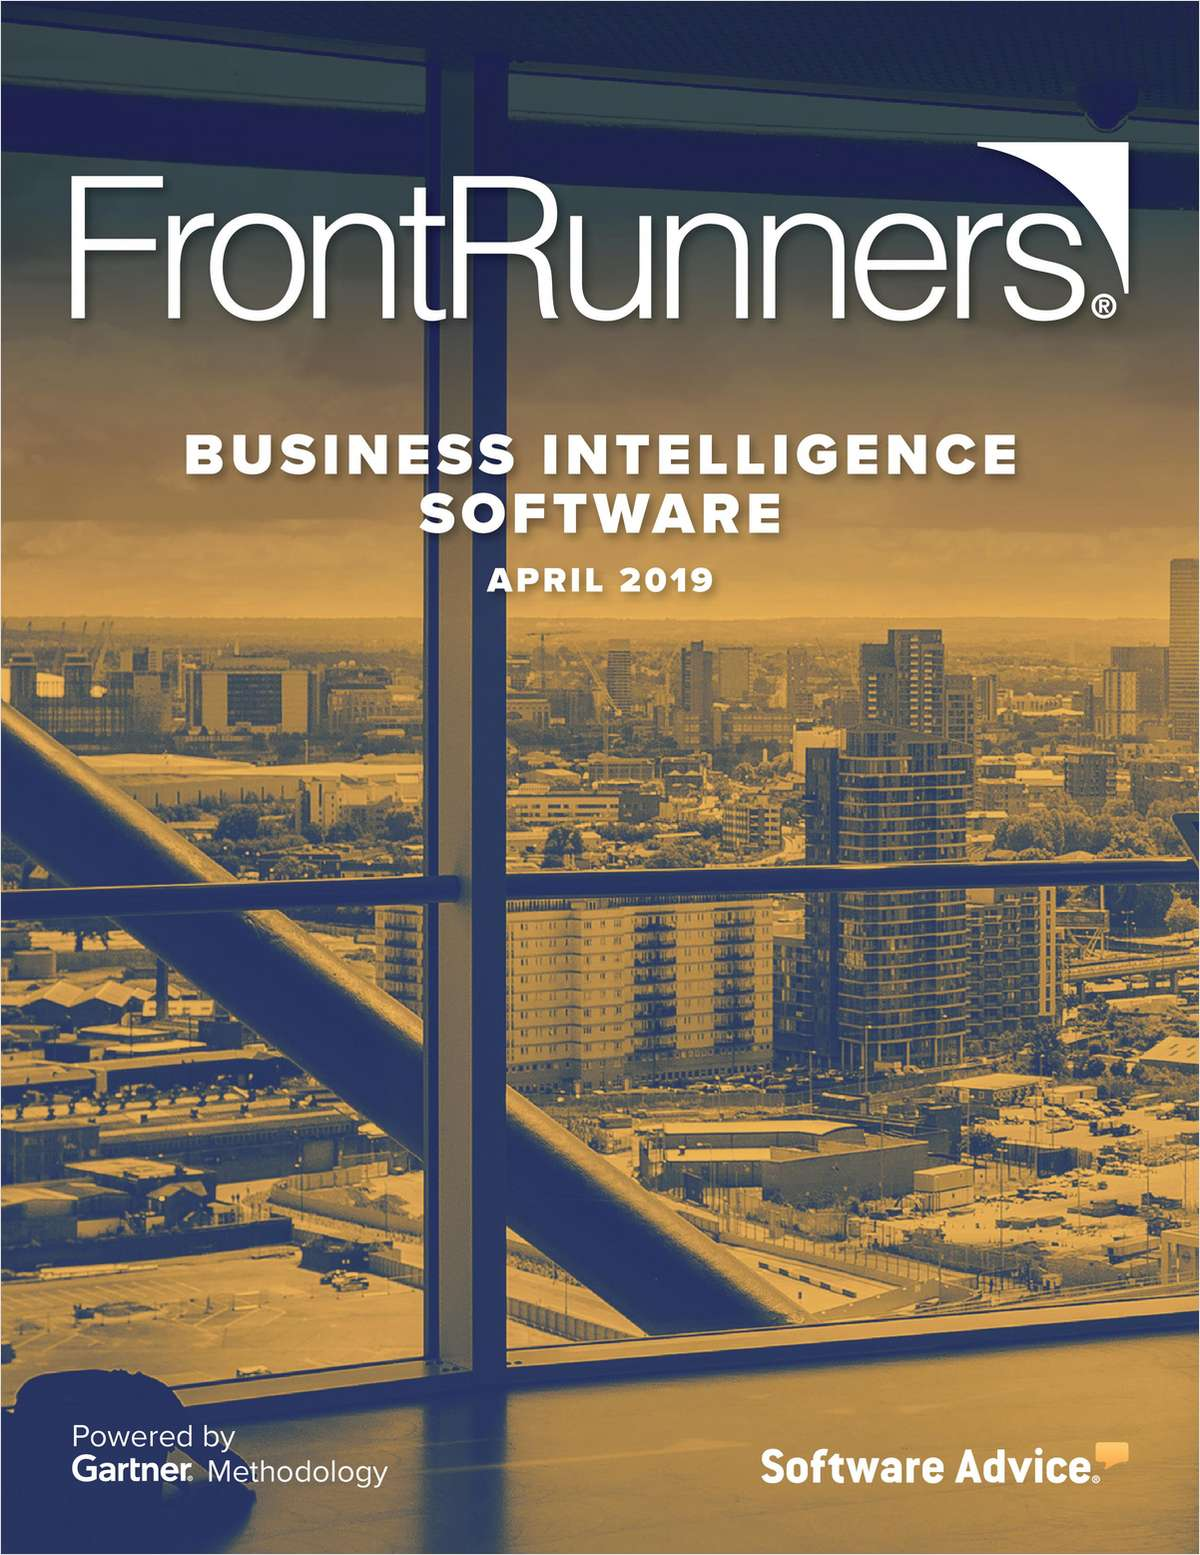 Top Rated FrontRunners for 2019 Business Intelligence Software